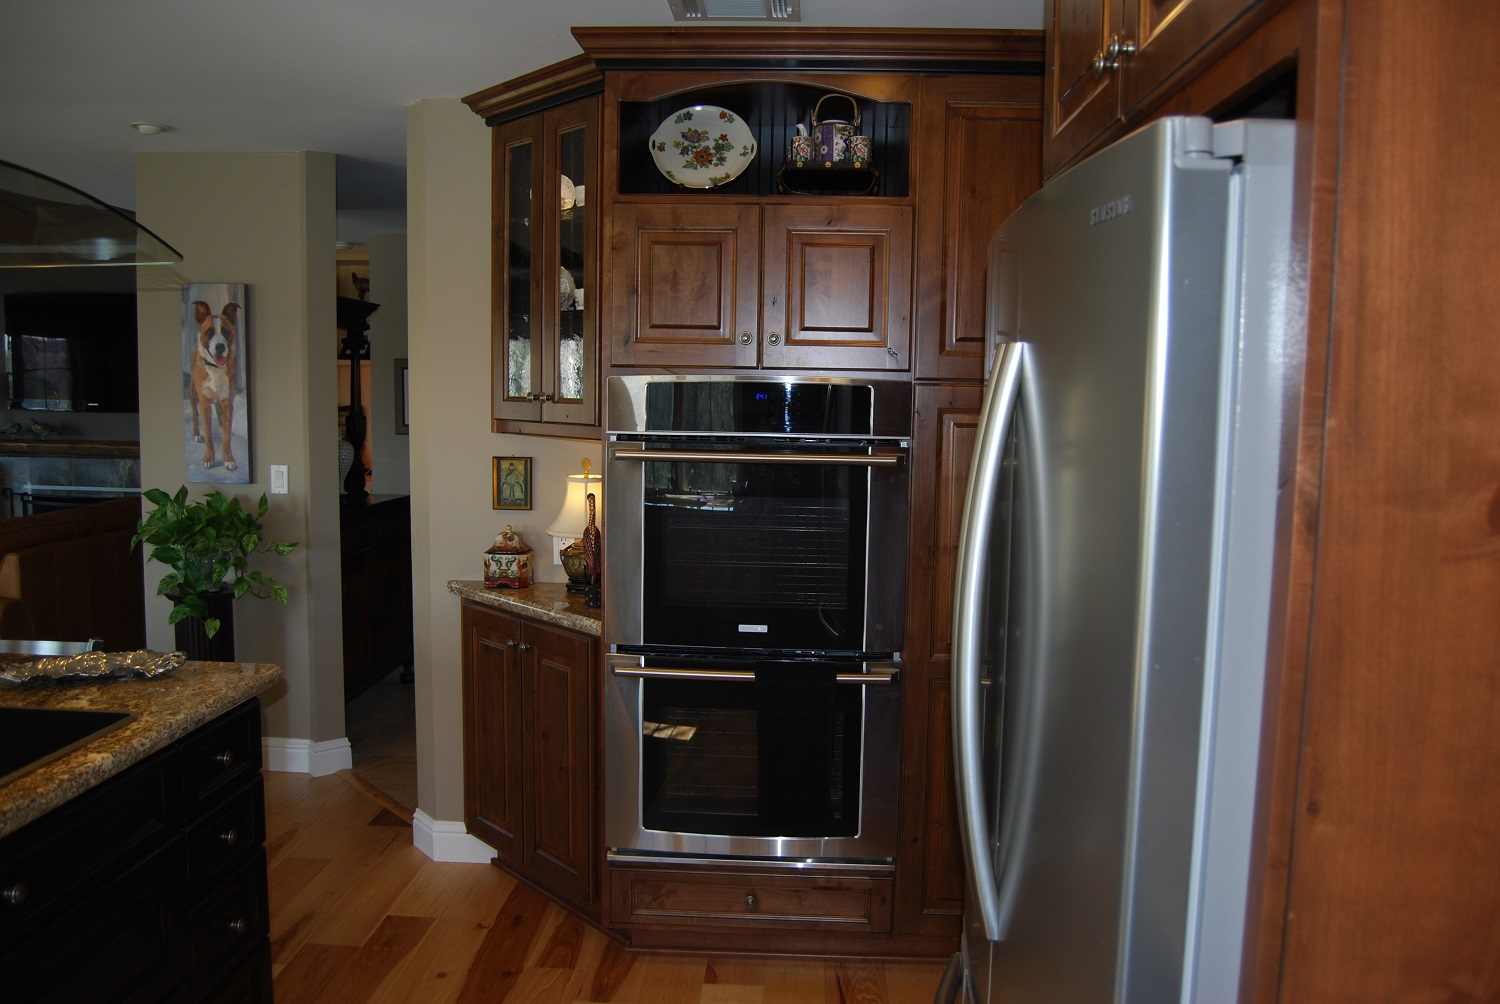 Double wall ovens with angled side cabinets